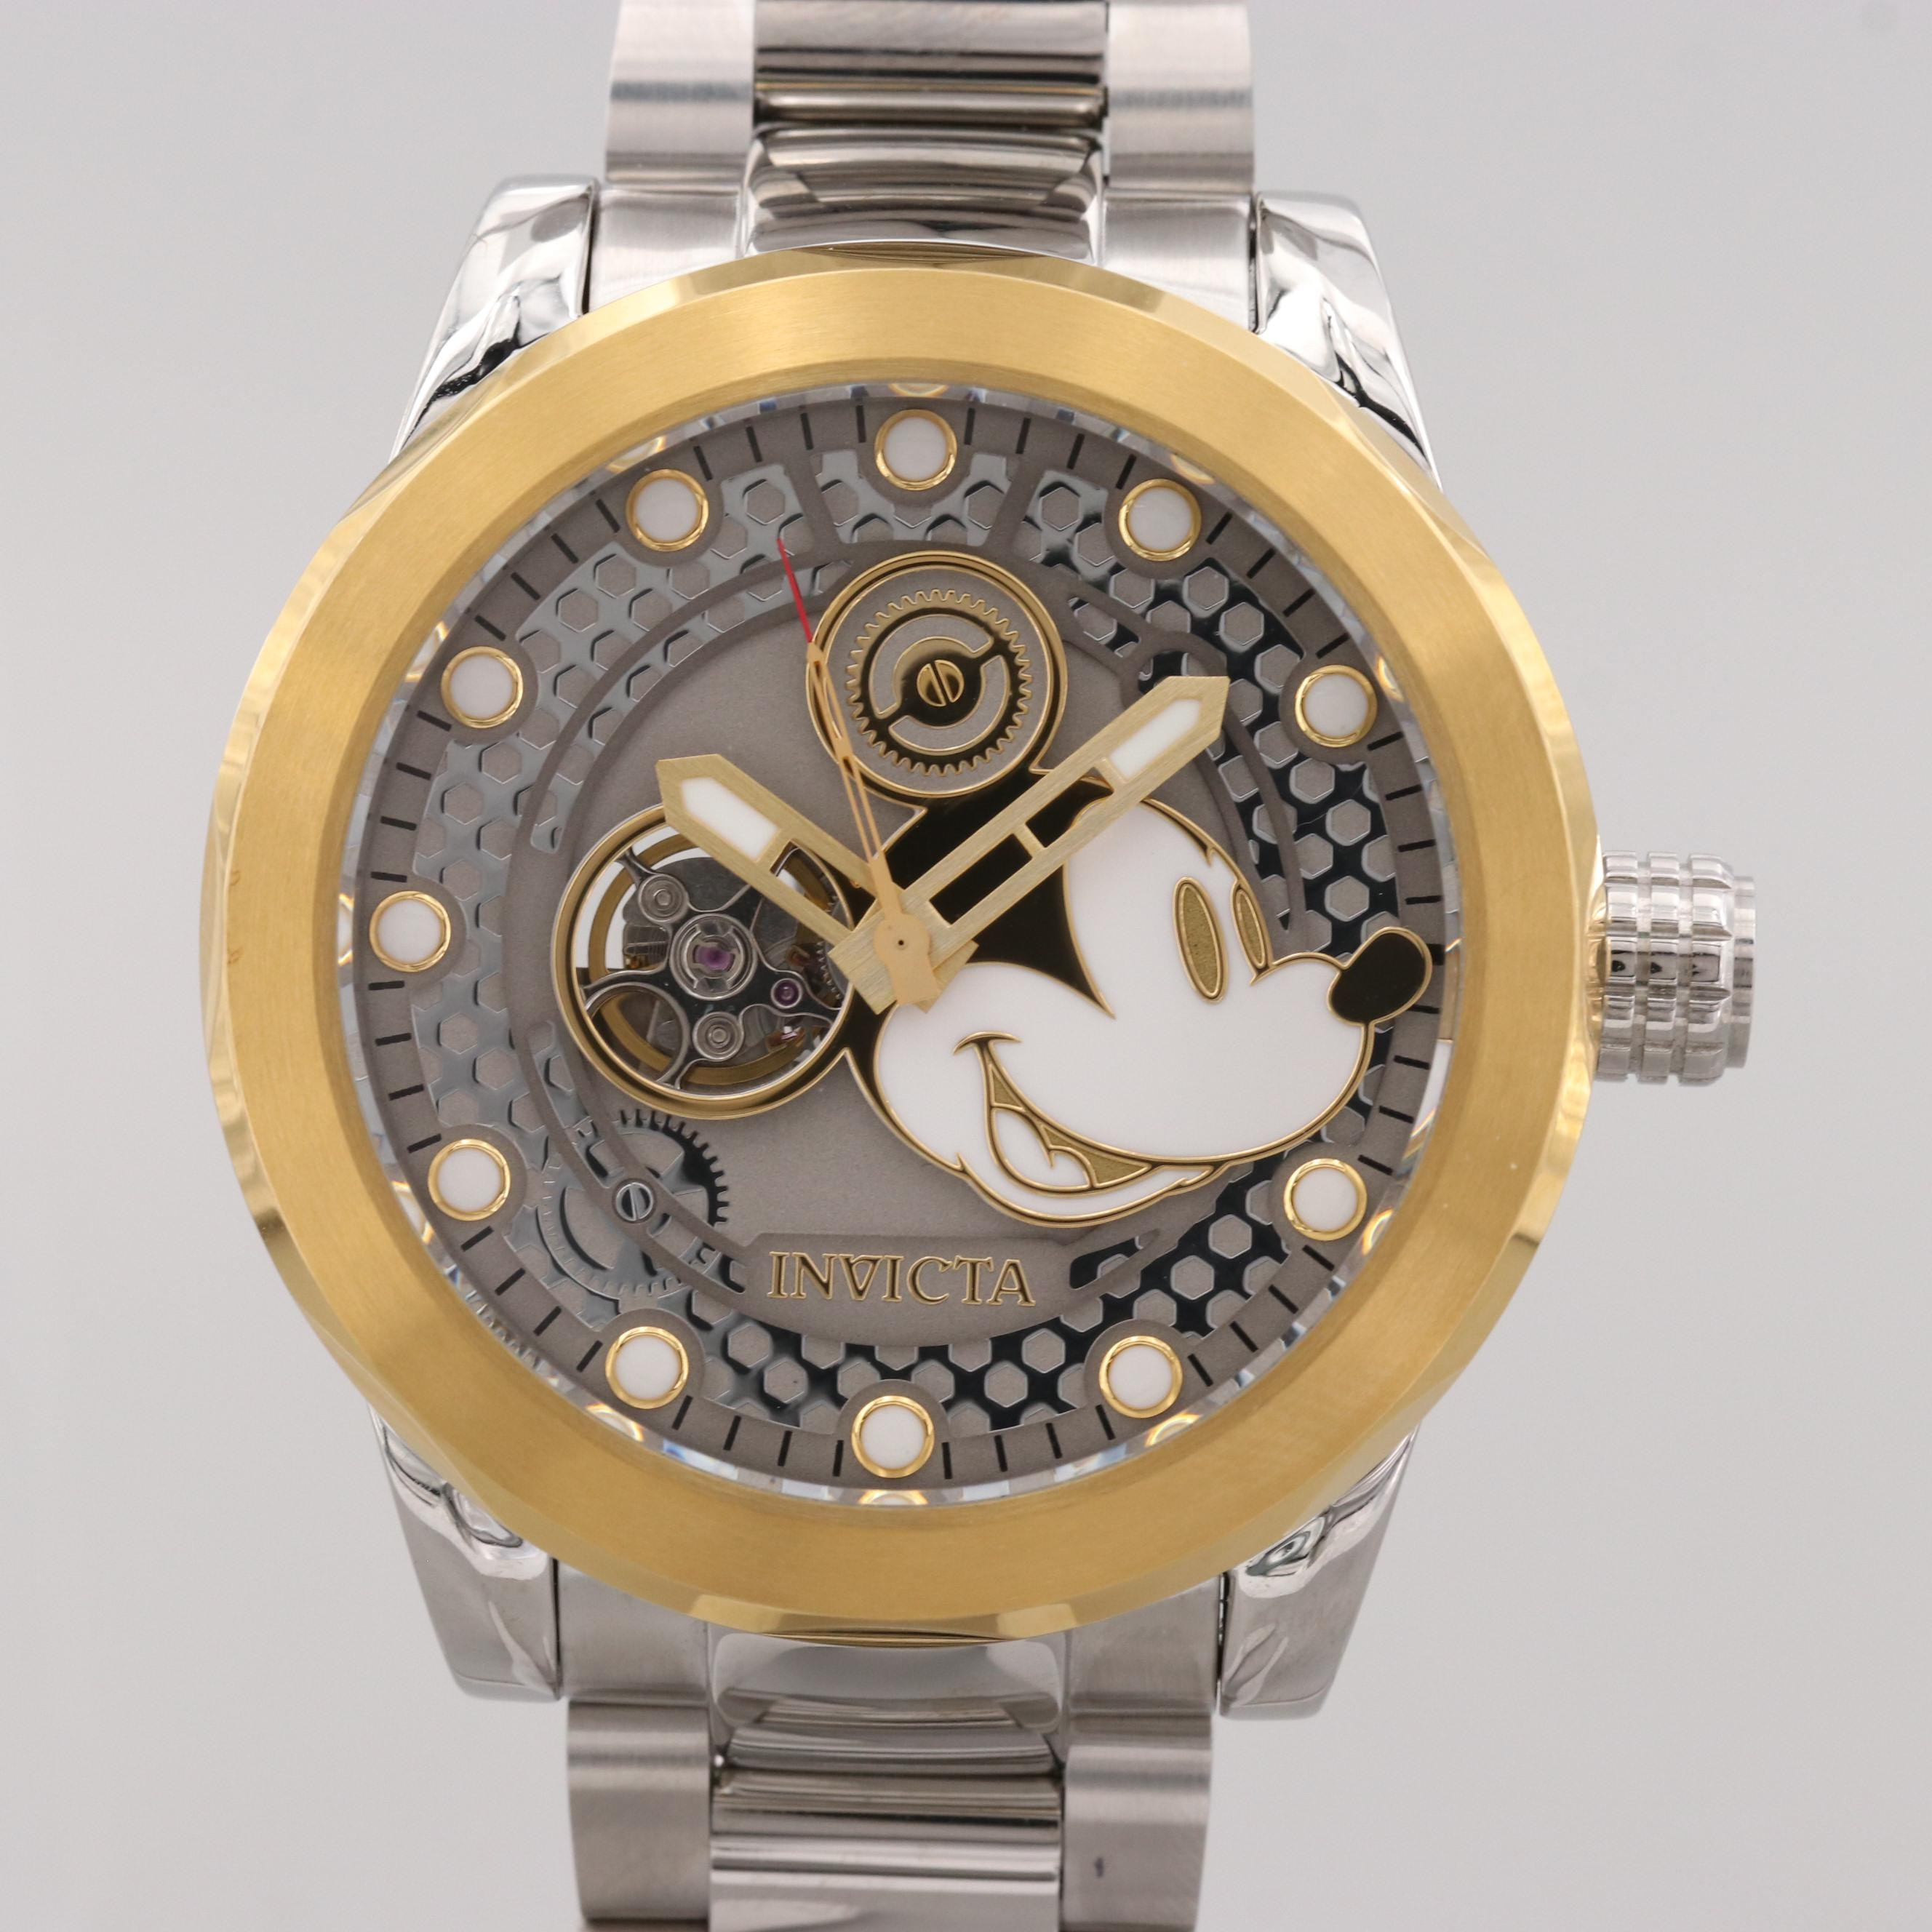 Invicta Disney's Mickey Mouse Stainless Steel Wristwatch With Case